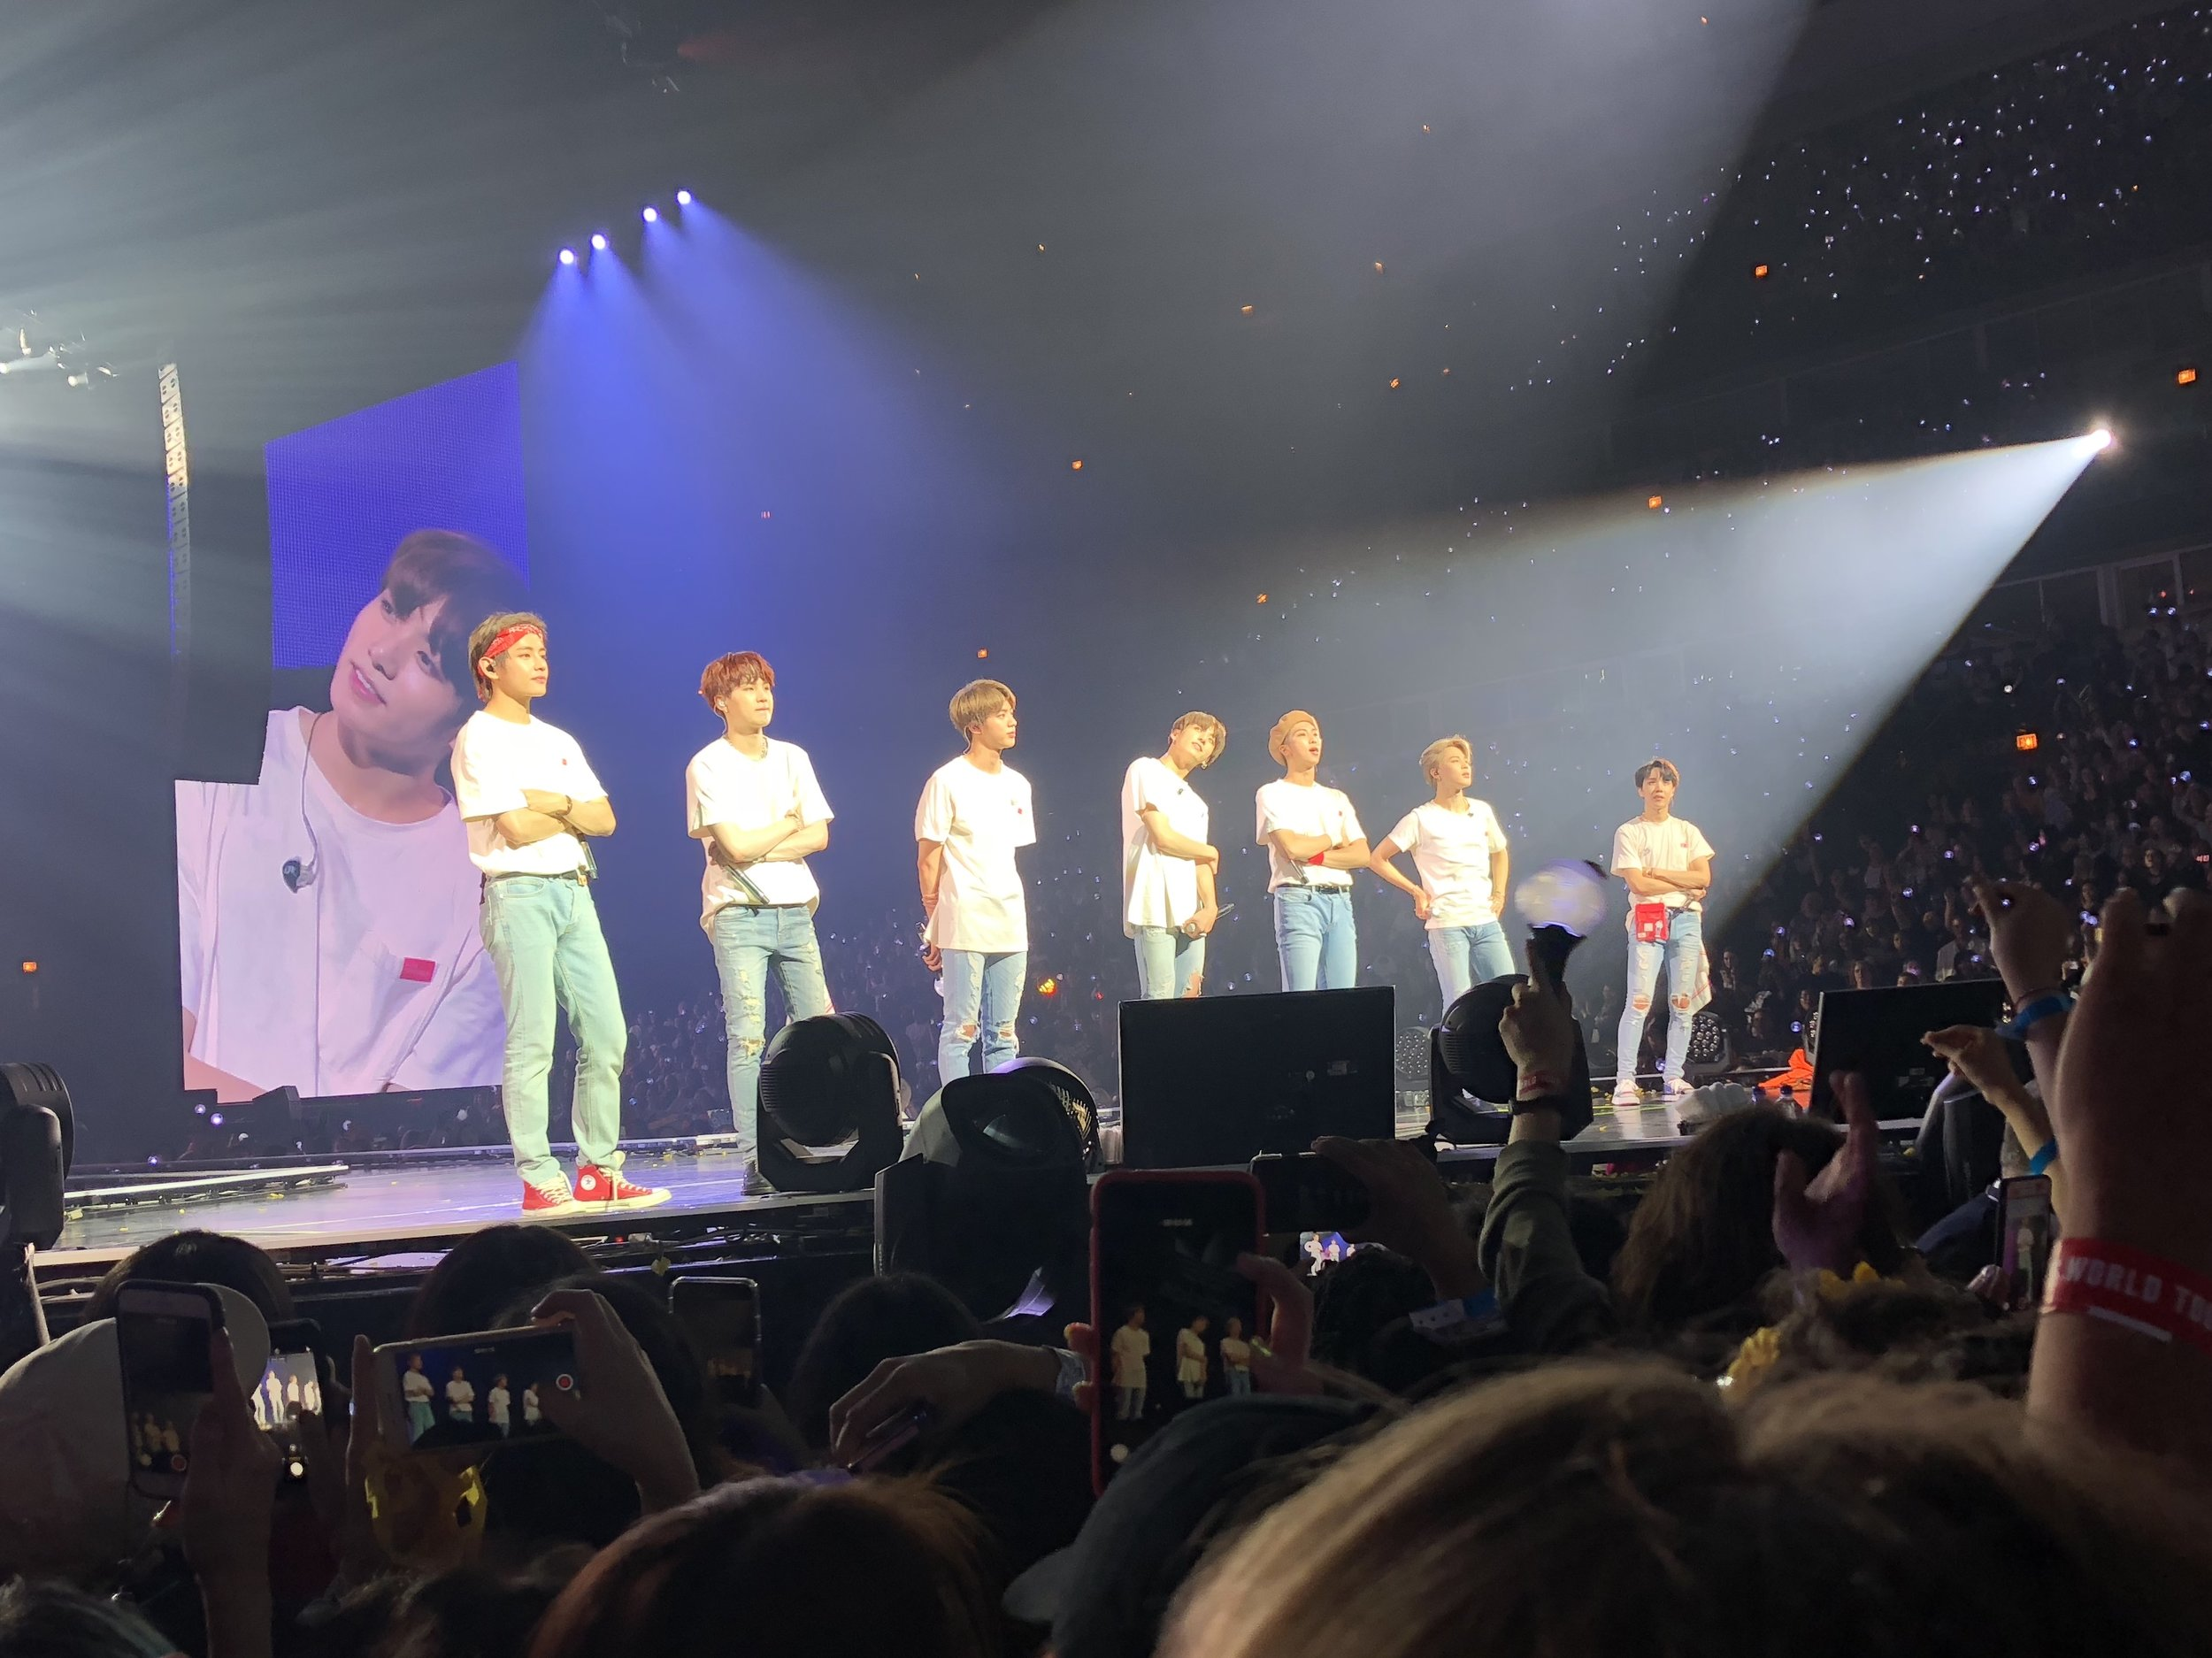 BTS in Chicago October 2, 2018 Photo by Alyssa T.